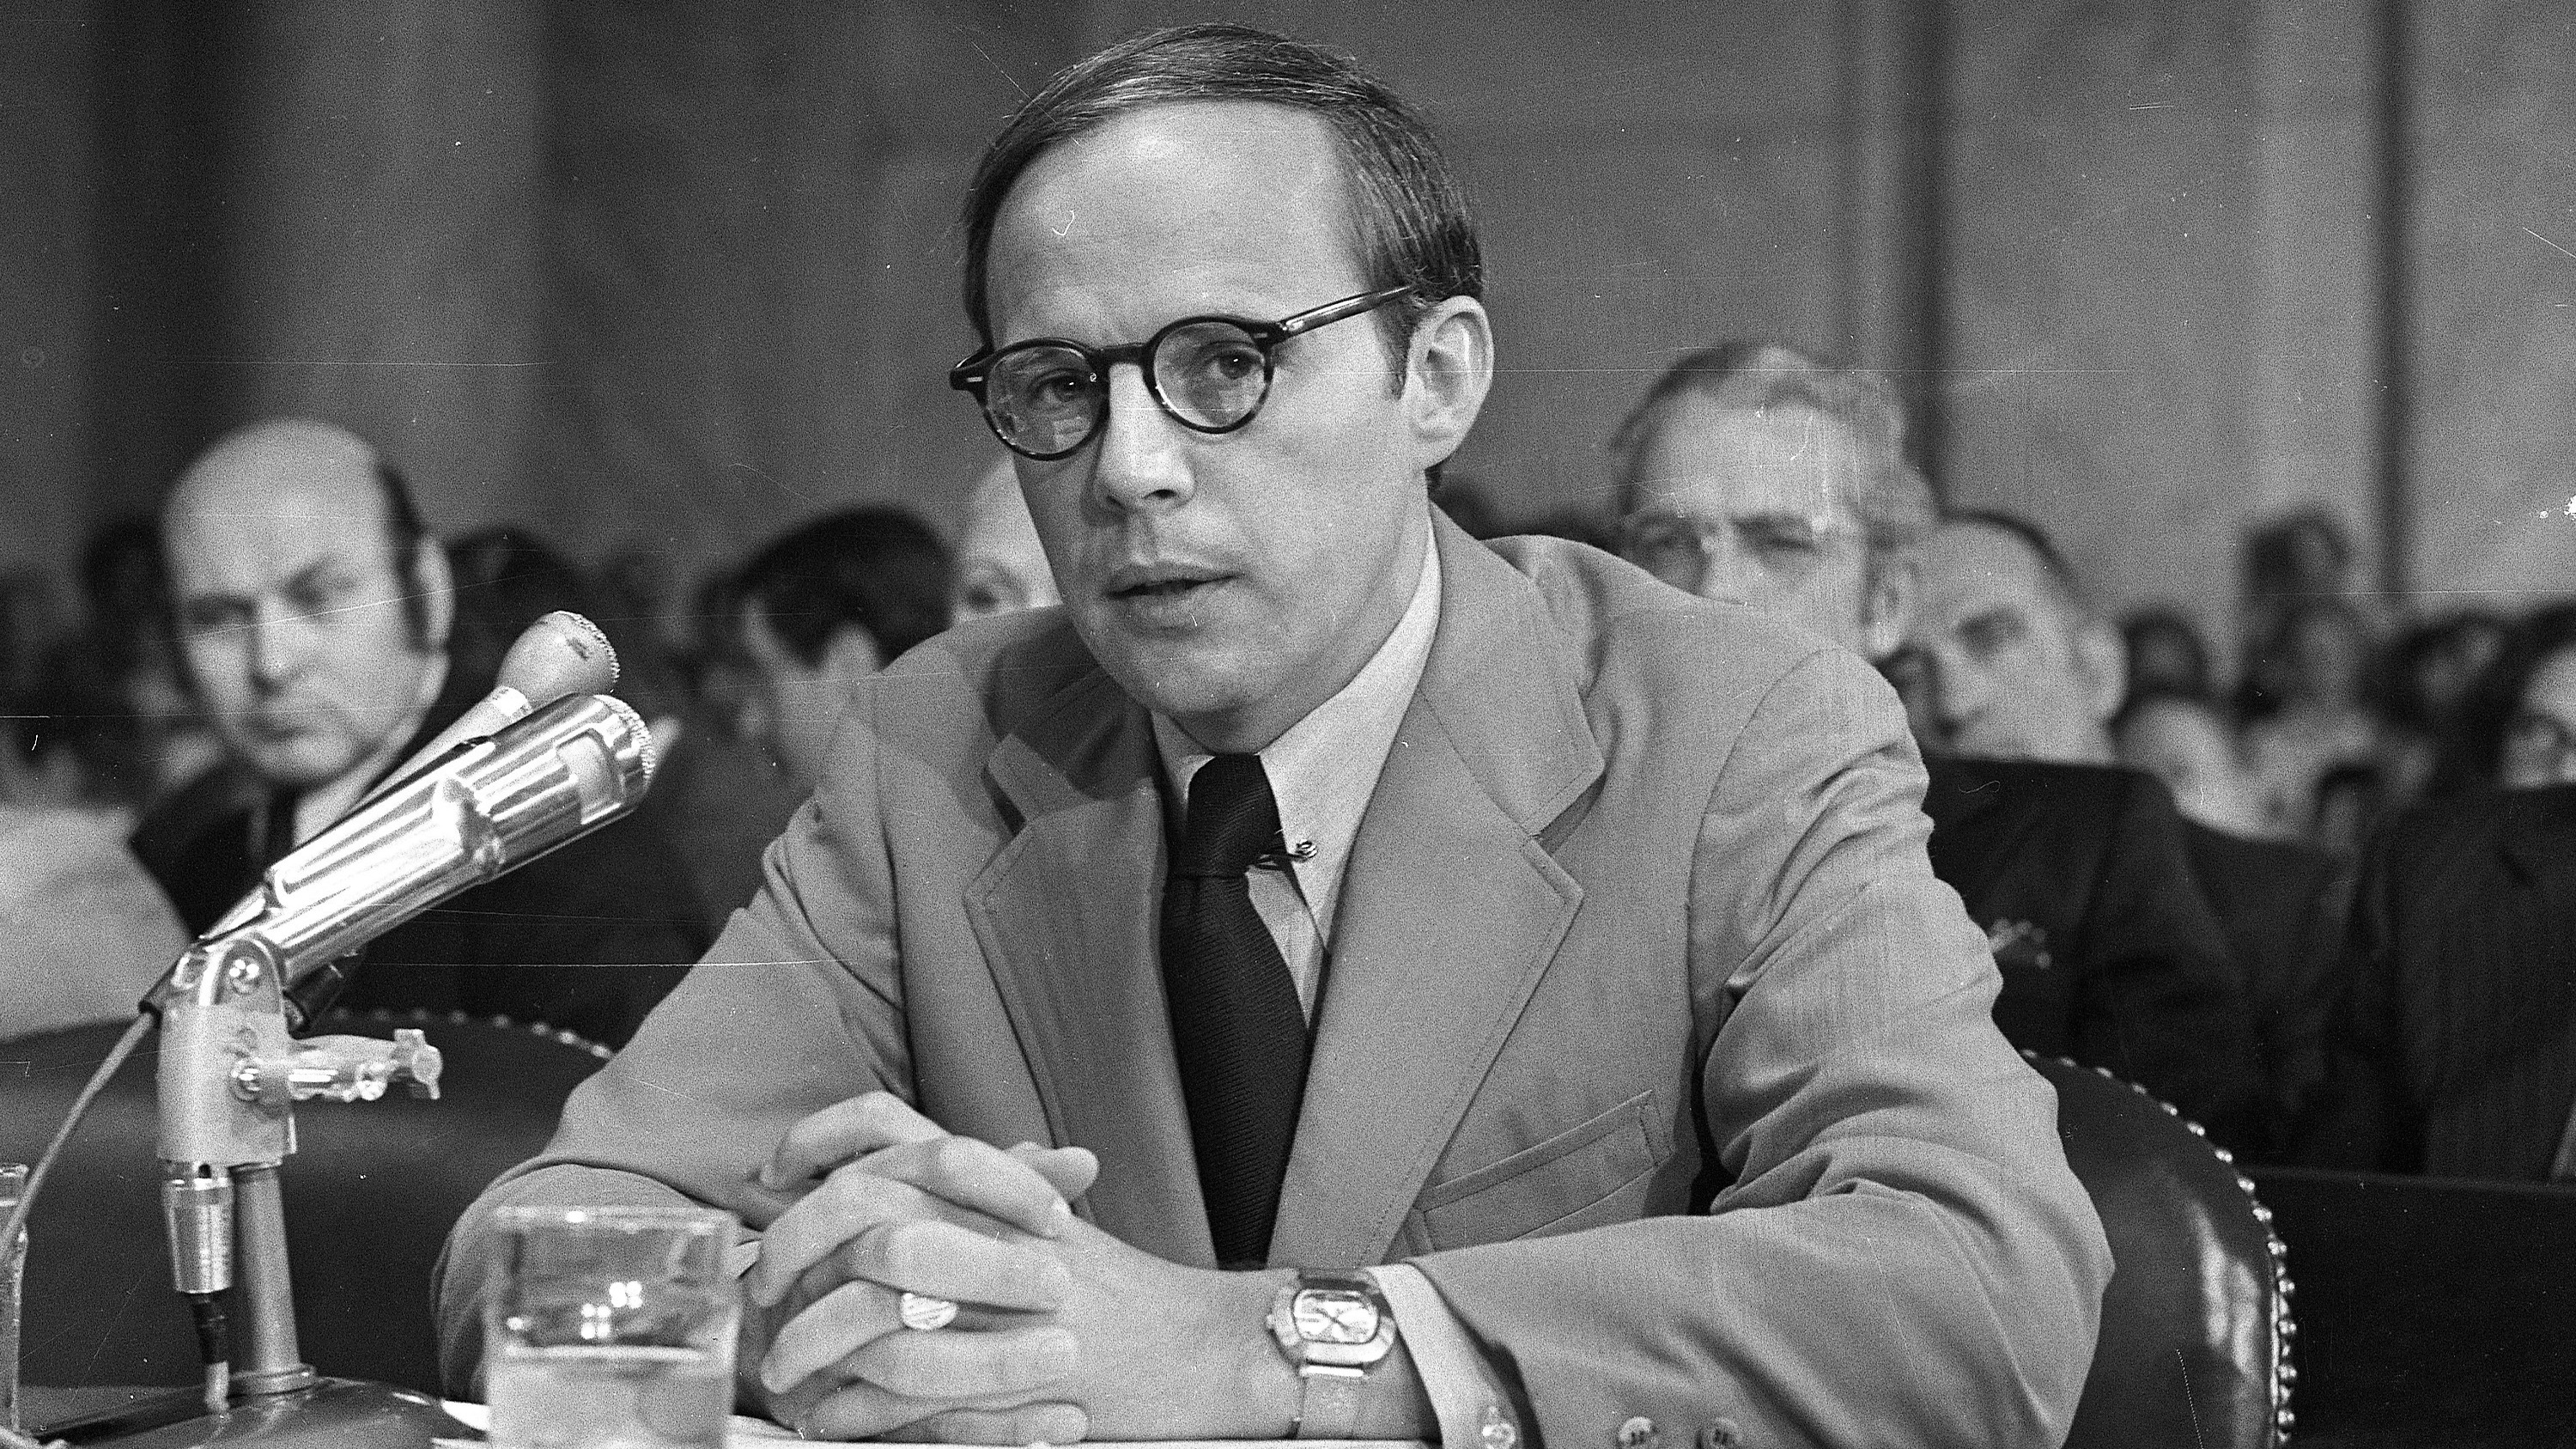 Former White House aide John Dean pauses while reading a prepared statement before the Senate Watergate Committee on June 25, 1973. Dean has returned to public view as a CNN contributor and vocal critic of President Trump.